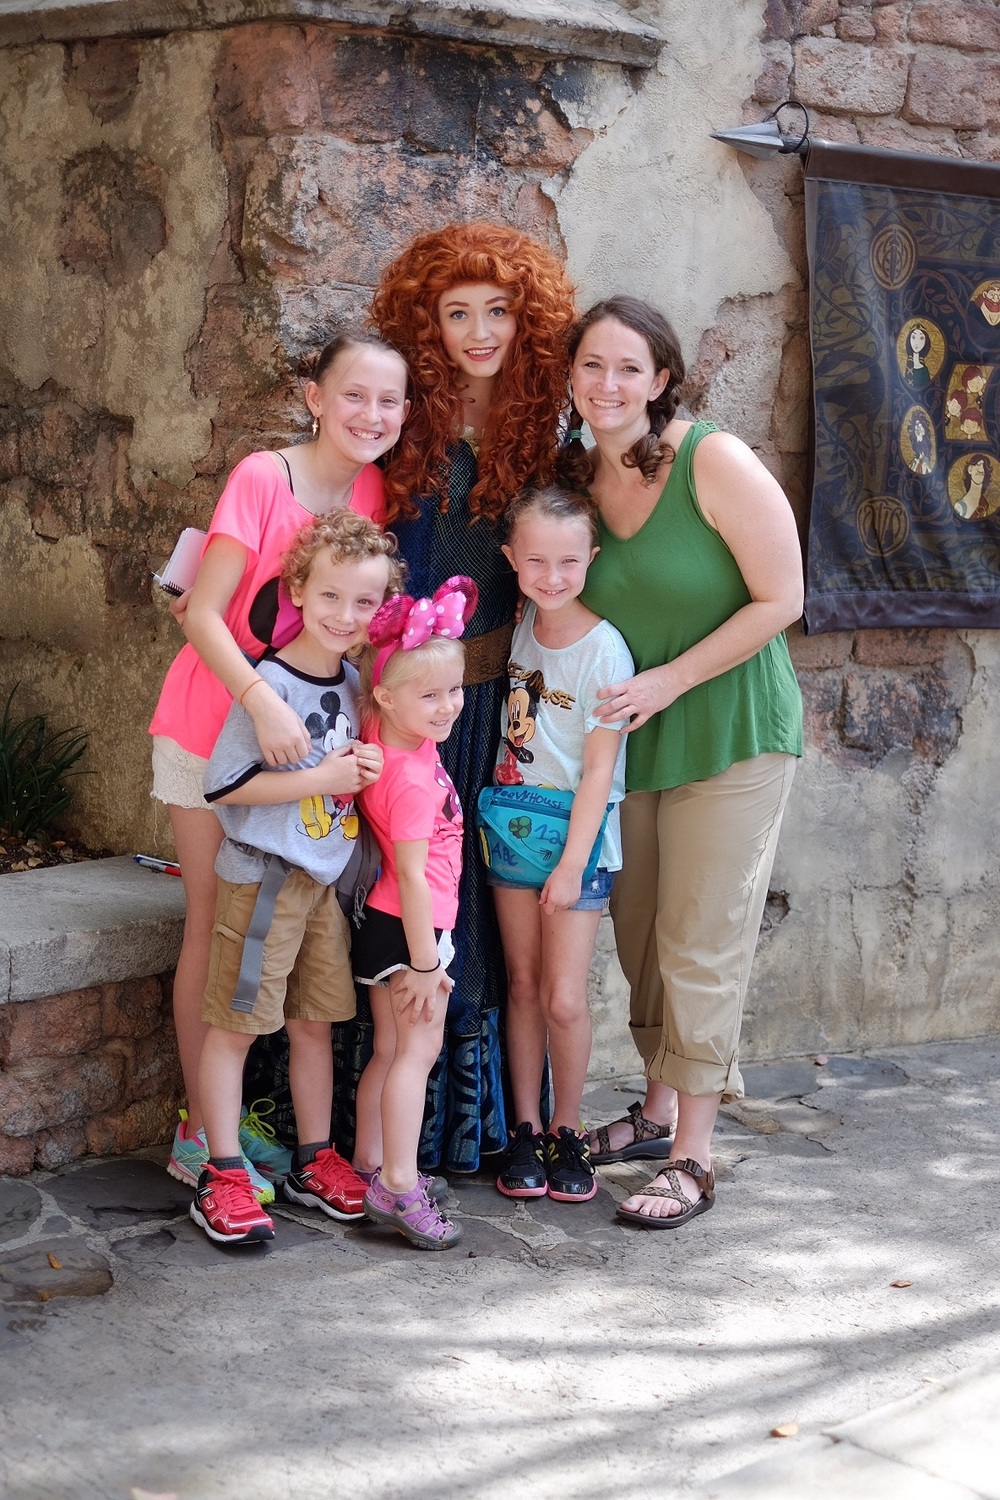 Merida and I talked curly hair issues and how people are always trying to take a brush to our mops!